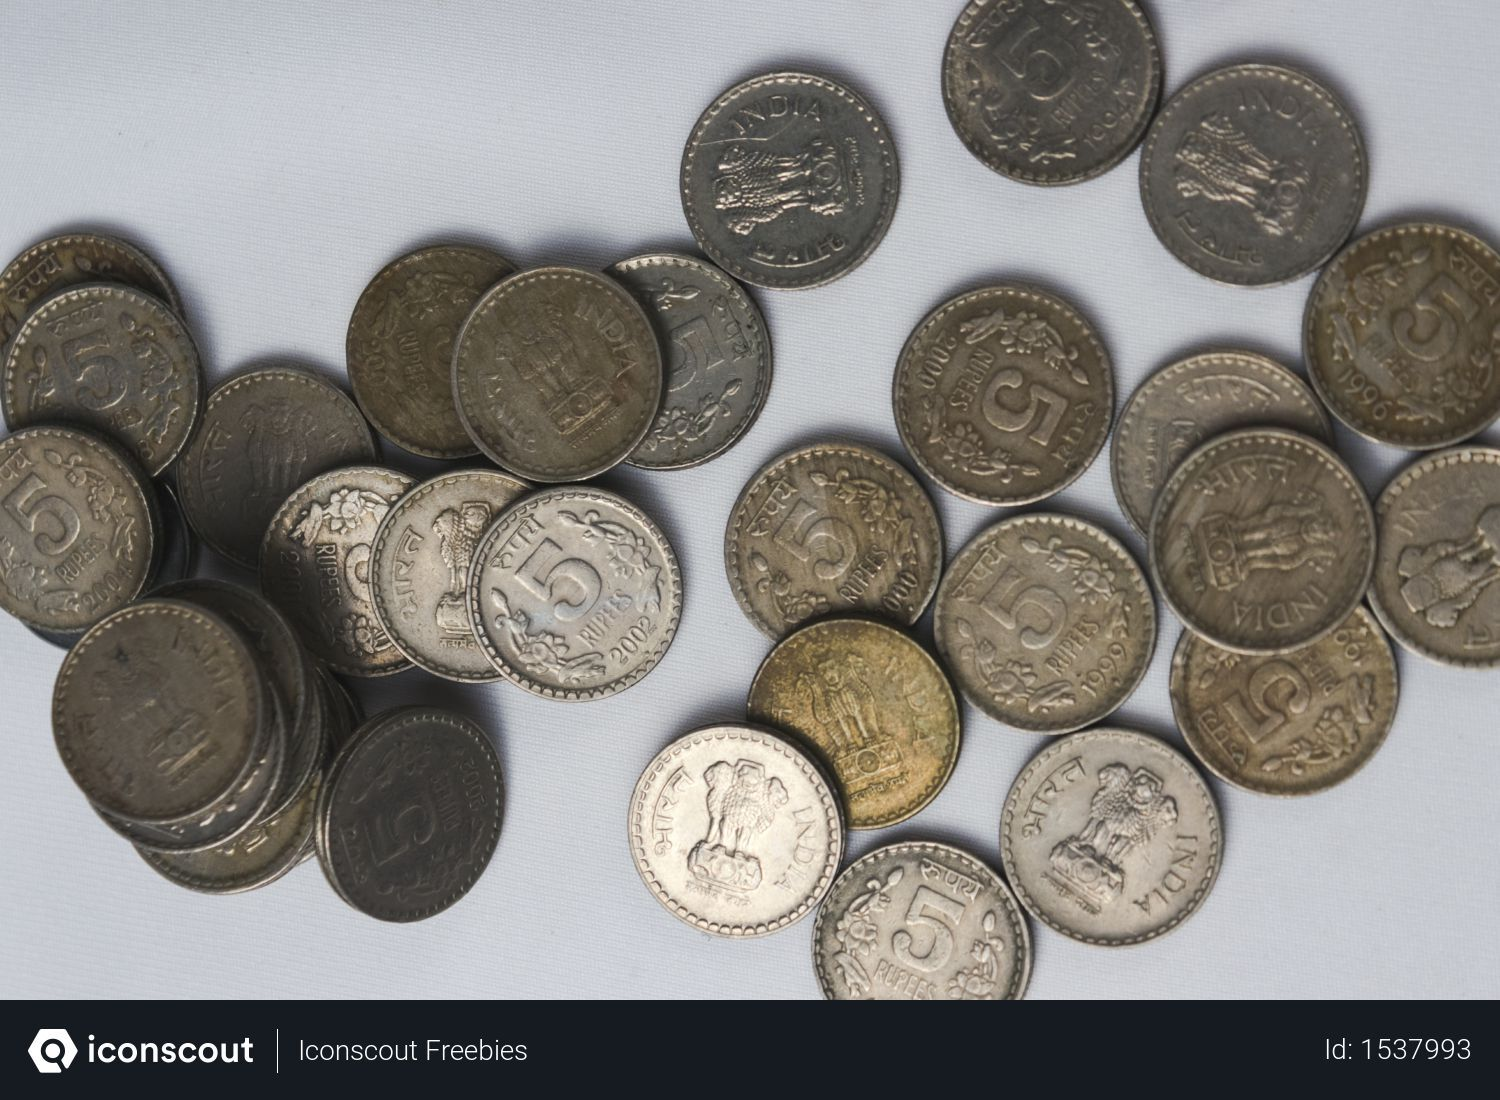 Free Indian Currency Coins On White Desk Photo Download In Png Jpg Format White Desks Business Photos Coins